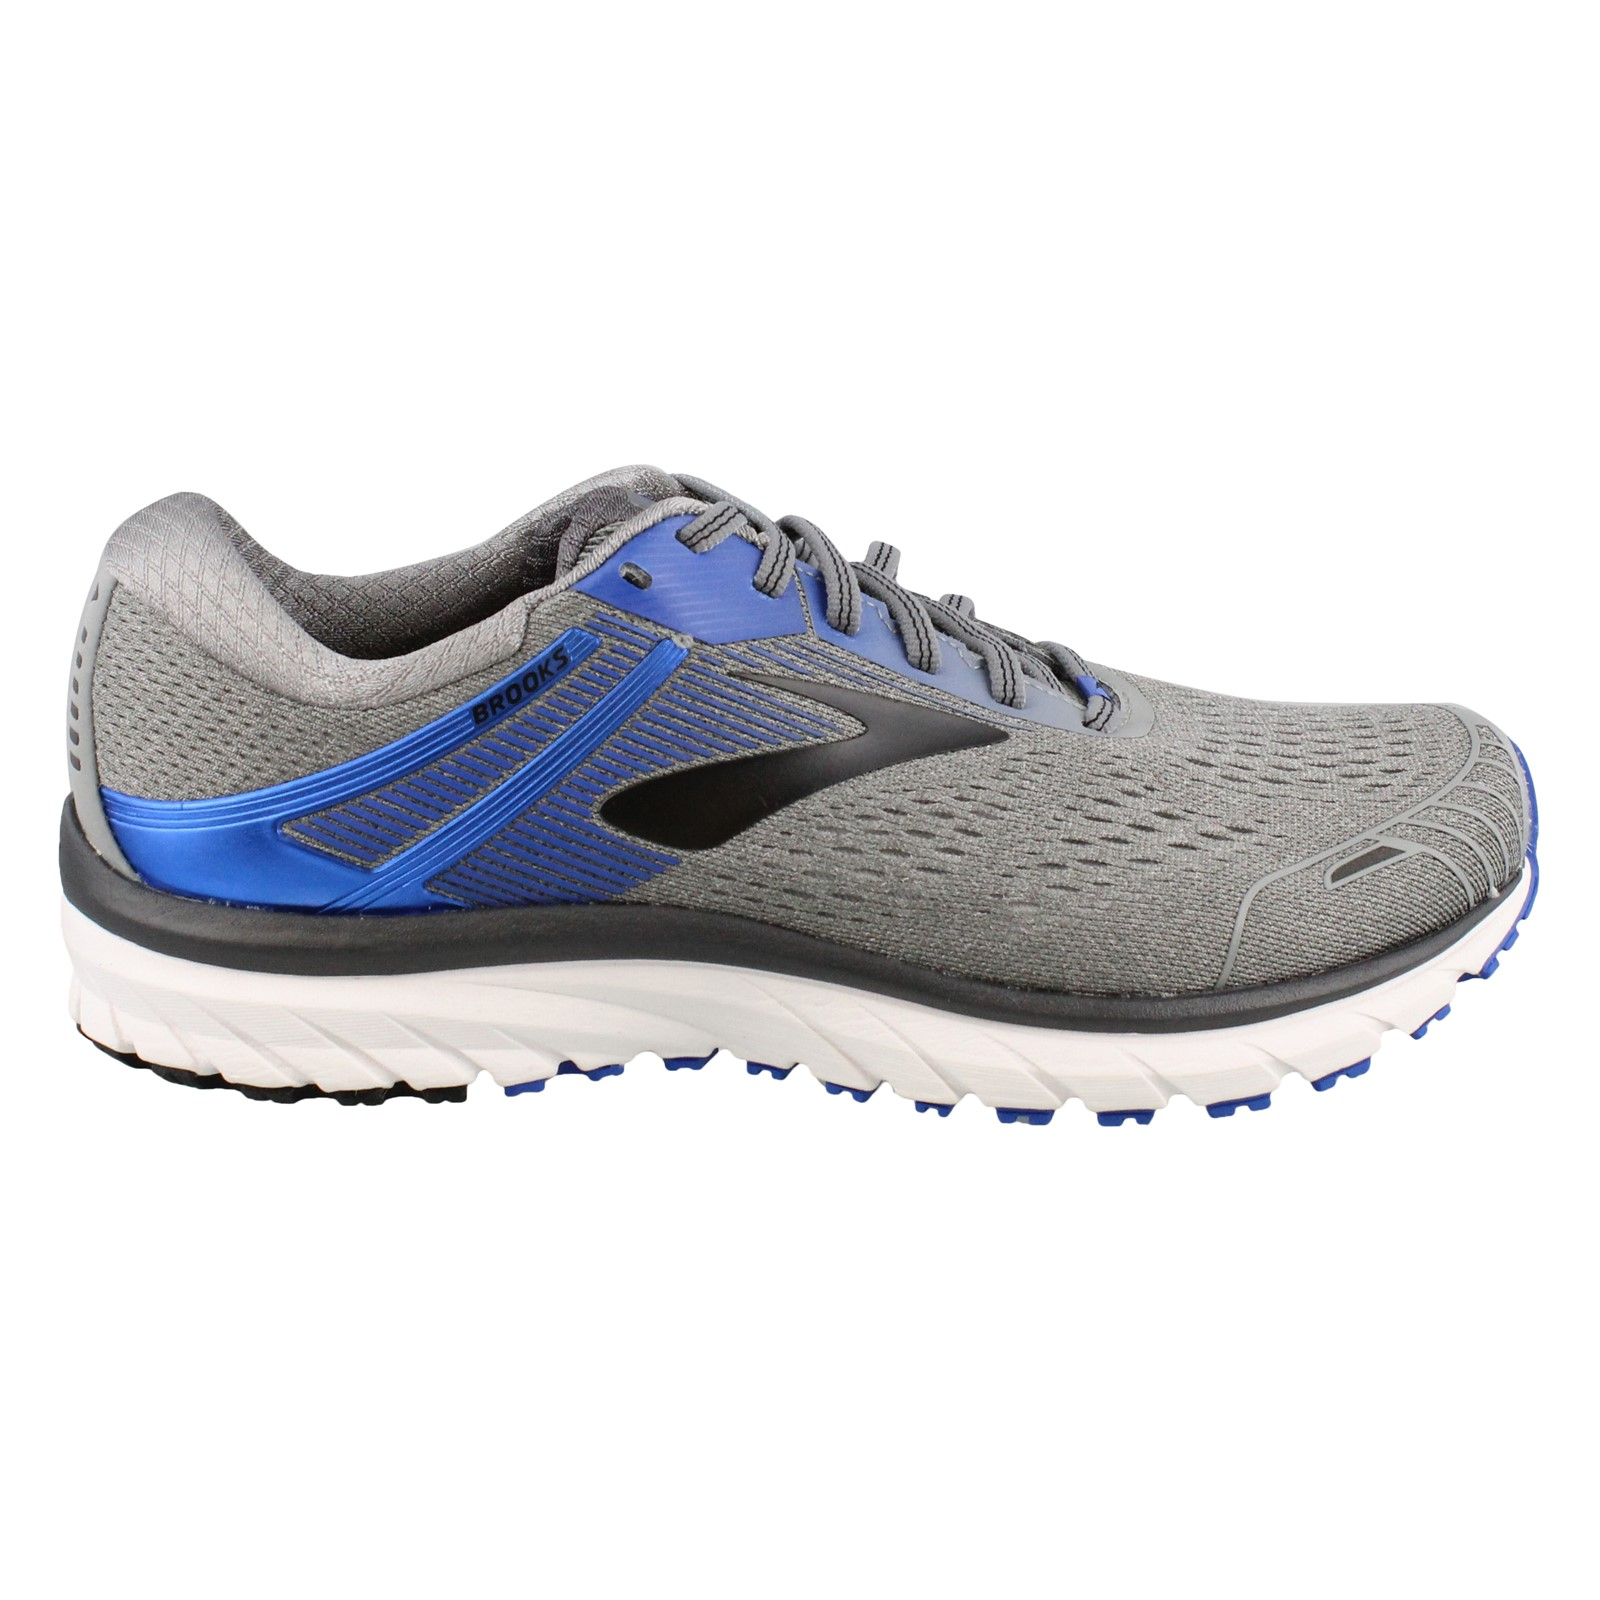 Men's Brooks, Adrenaline GTS 18 Running Sneakers 4E Width